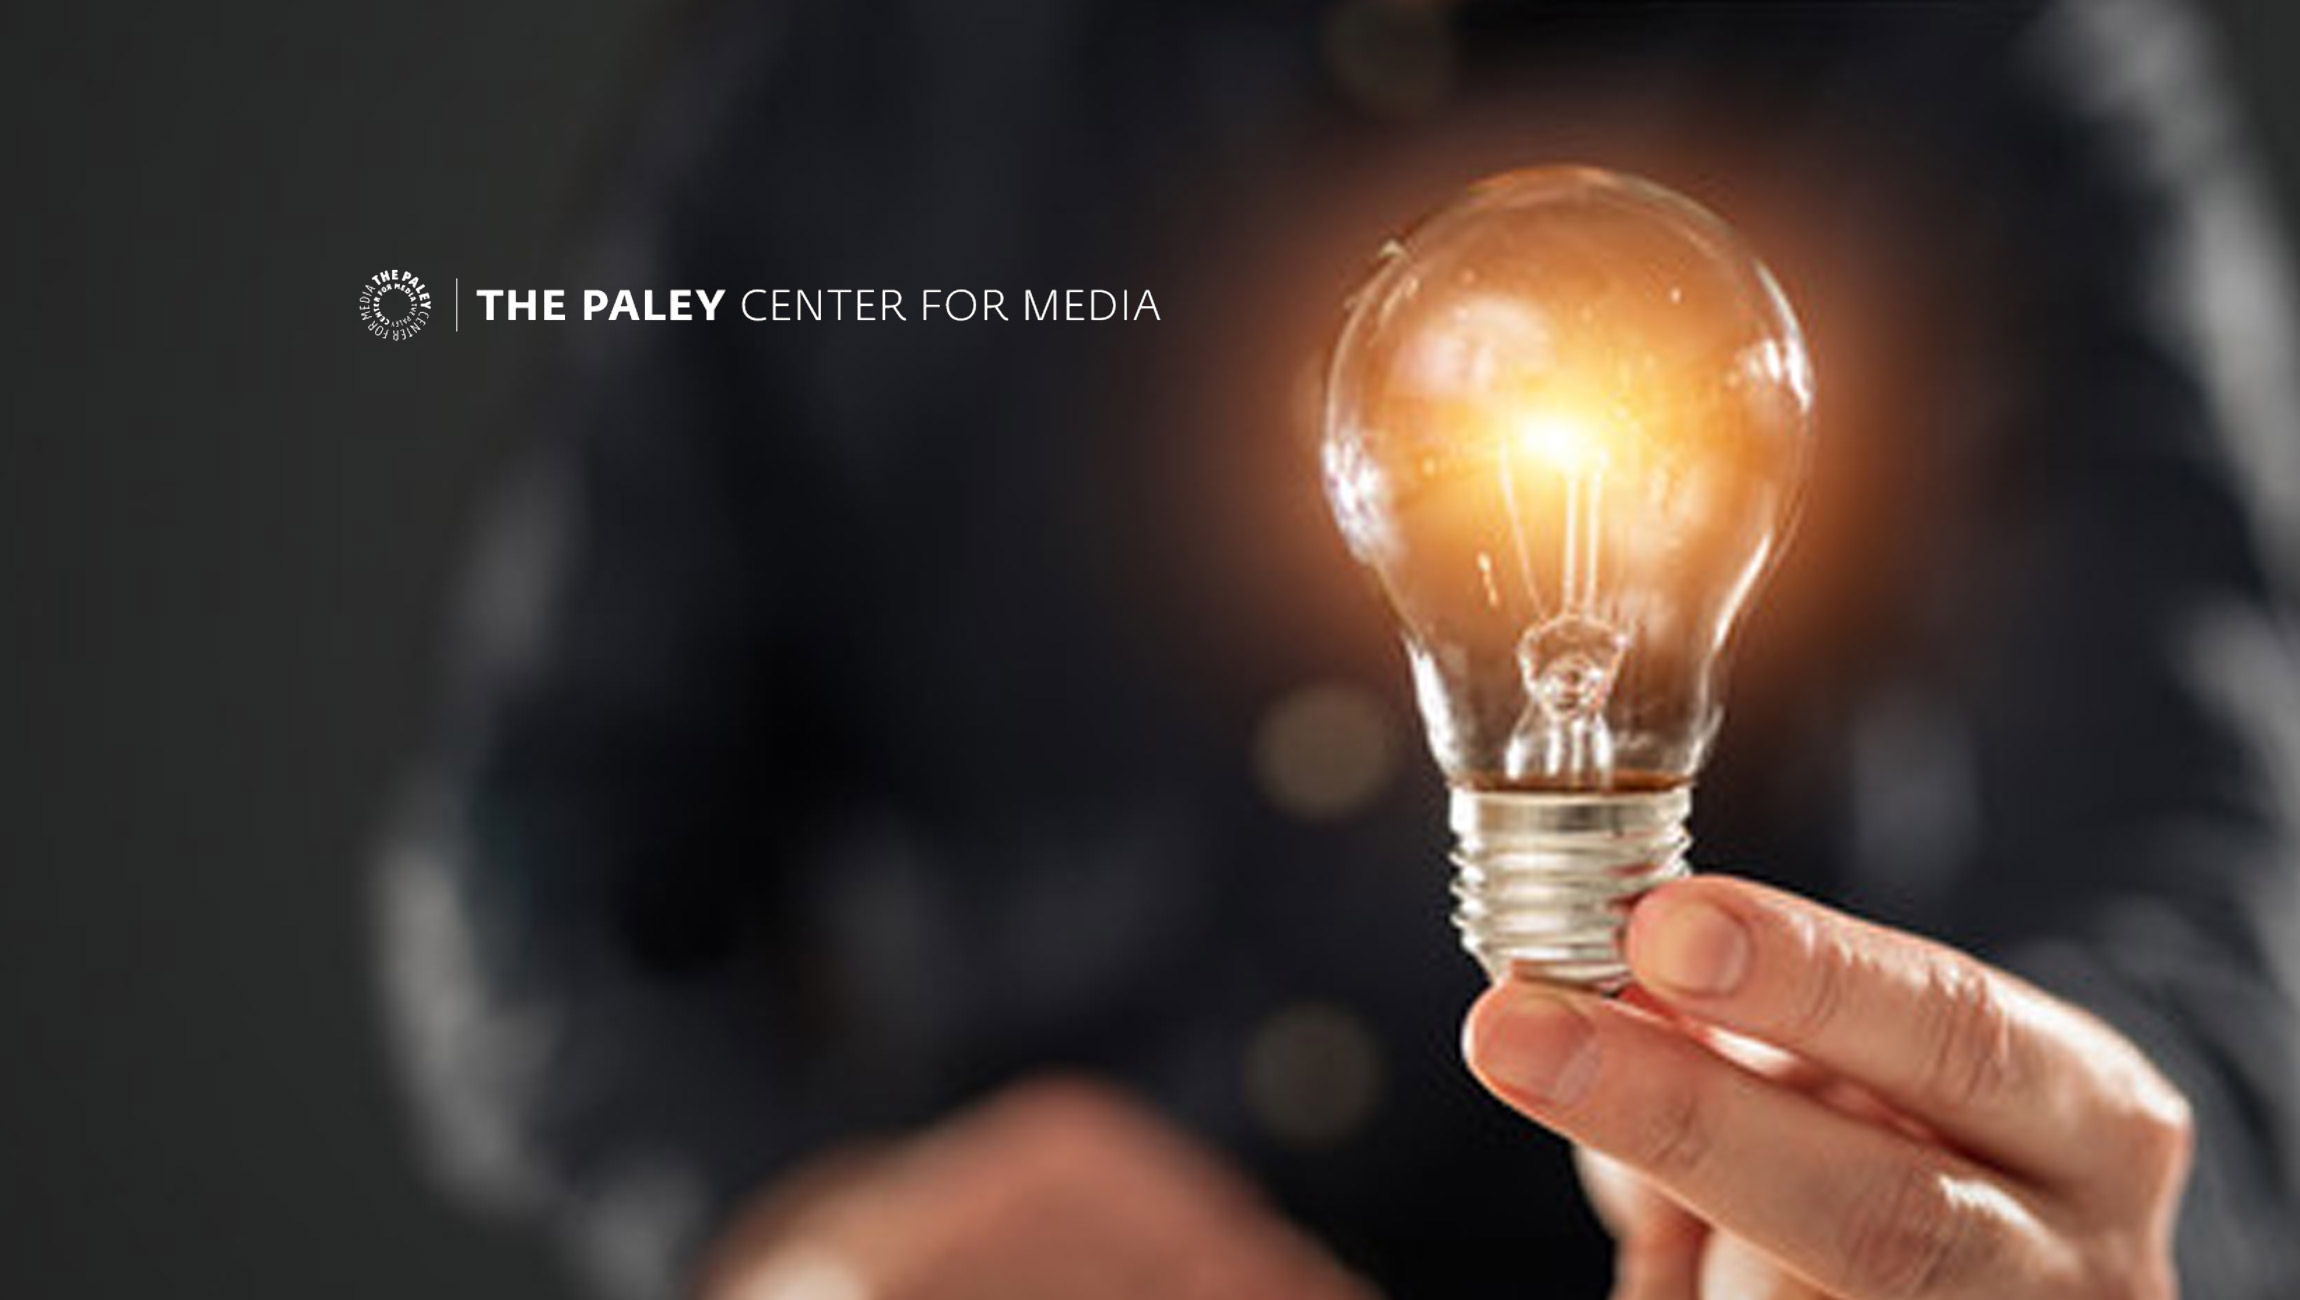 Paley Center for Media Announces New PaleyImpact Event: Media's Role in Preparing for Life After COVID-19